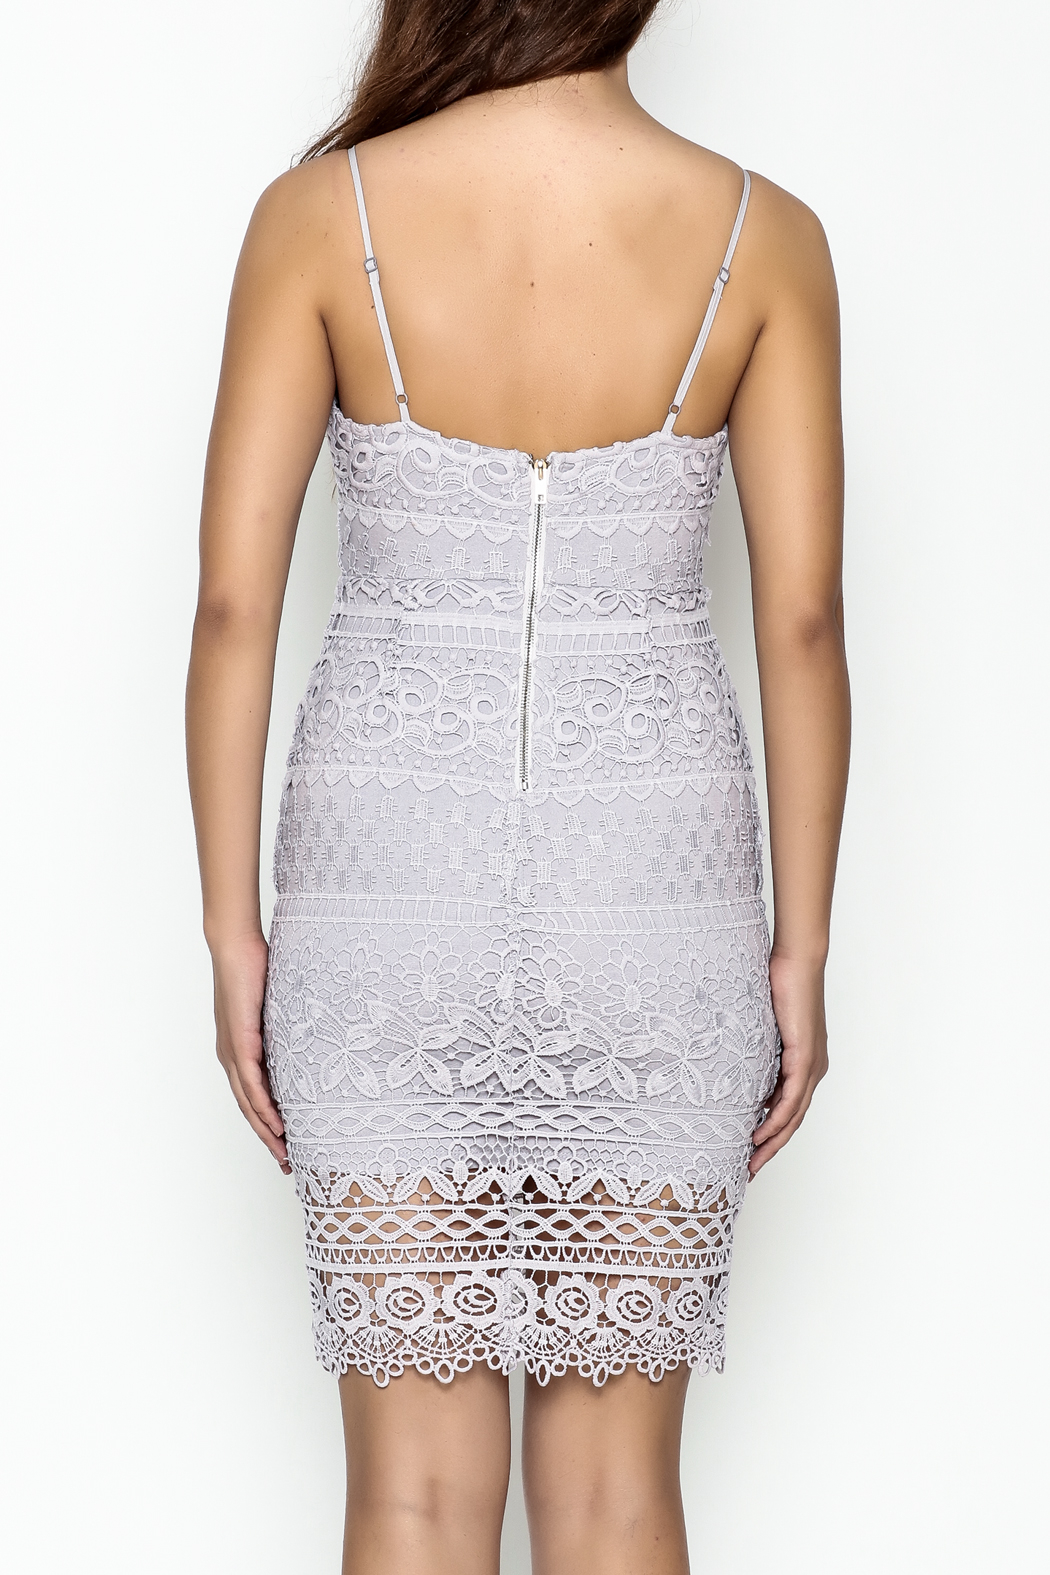 Ark & Co. Lace Dress - Back Cropped Image